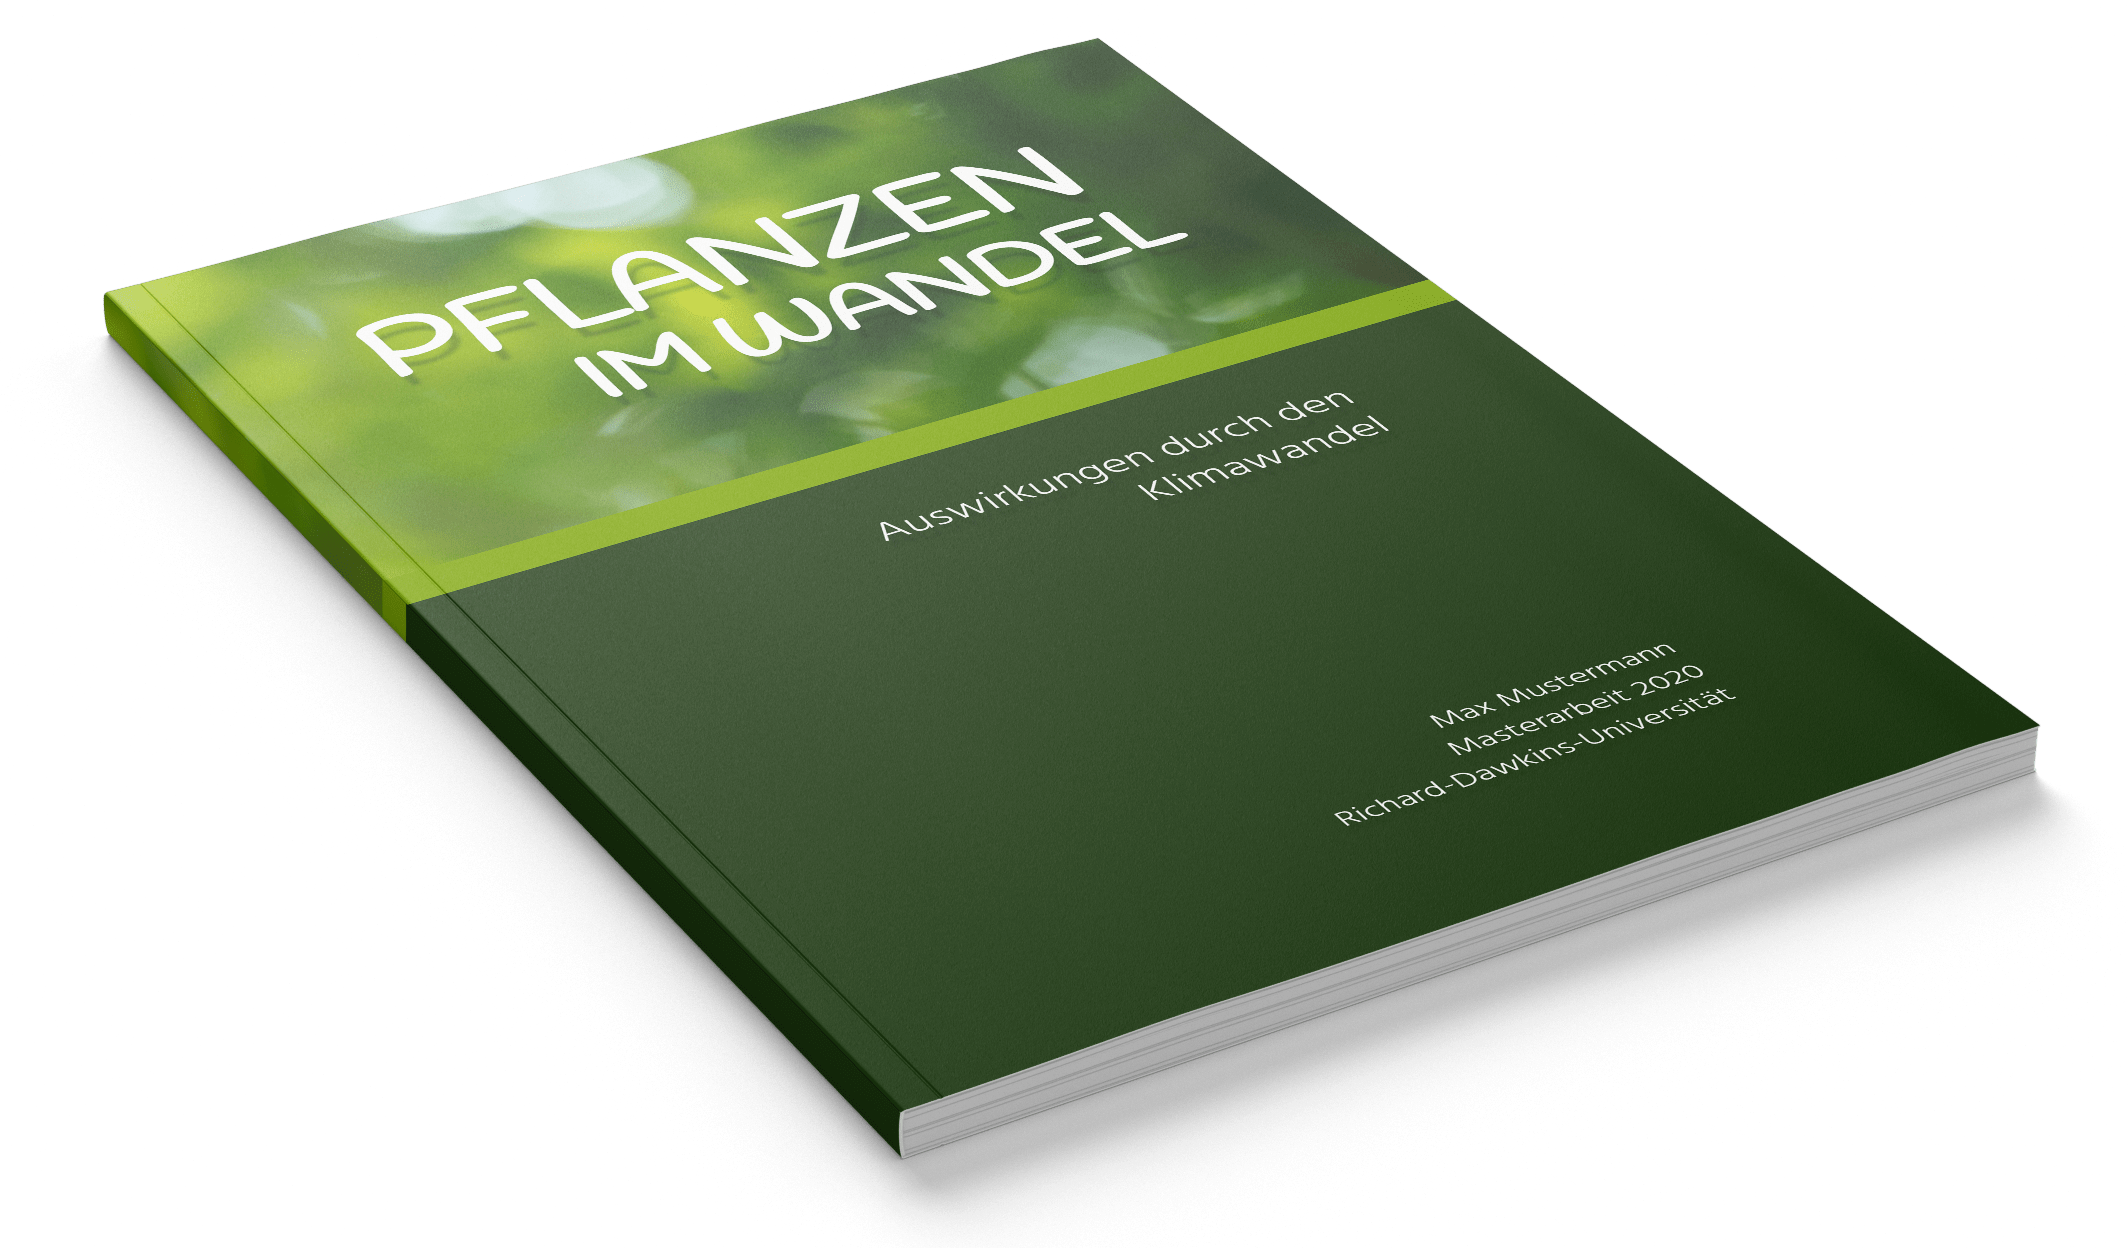 Softcover DIN A3 hoch